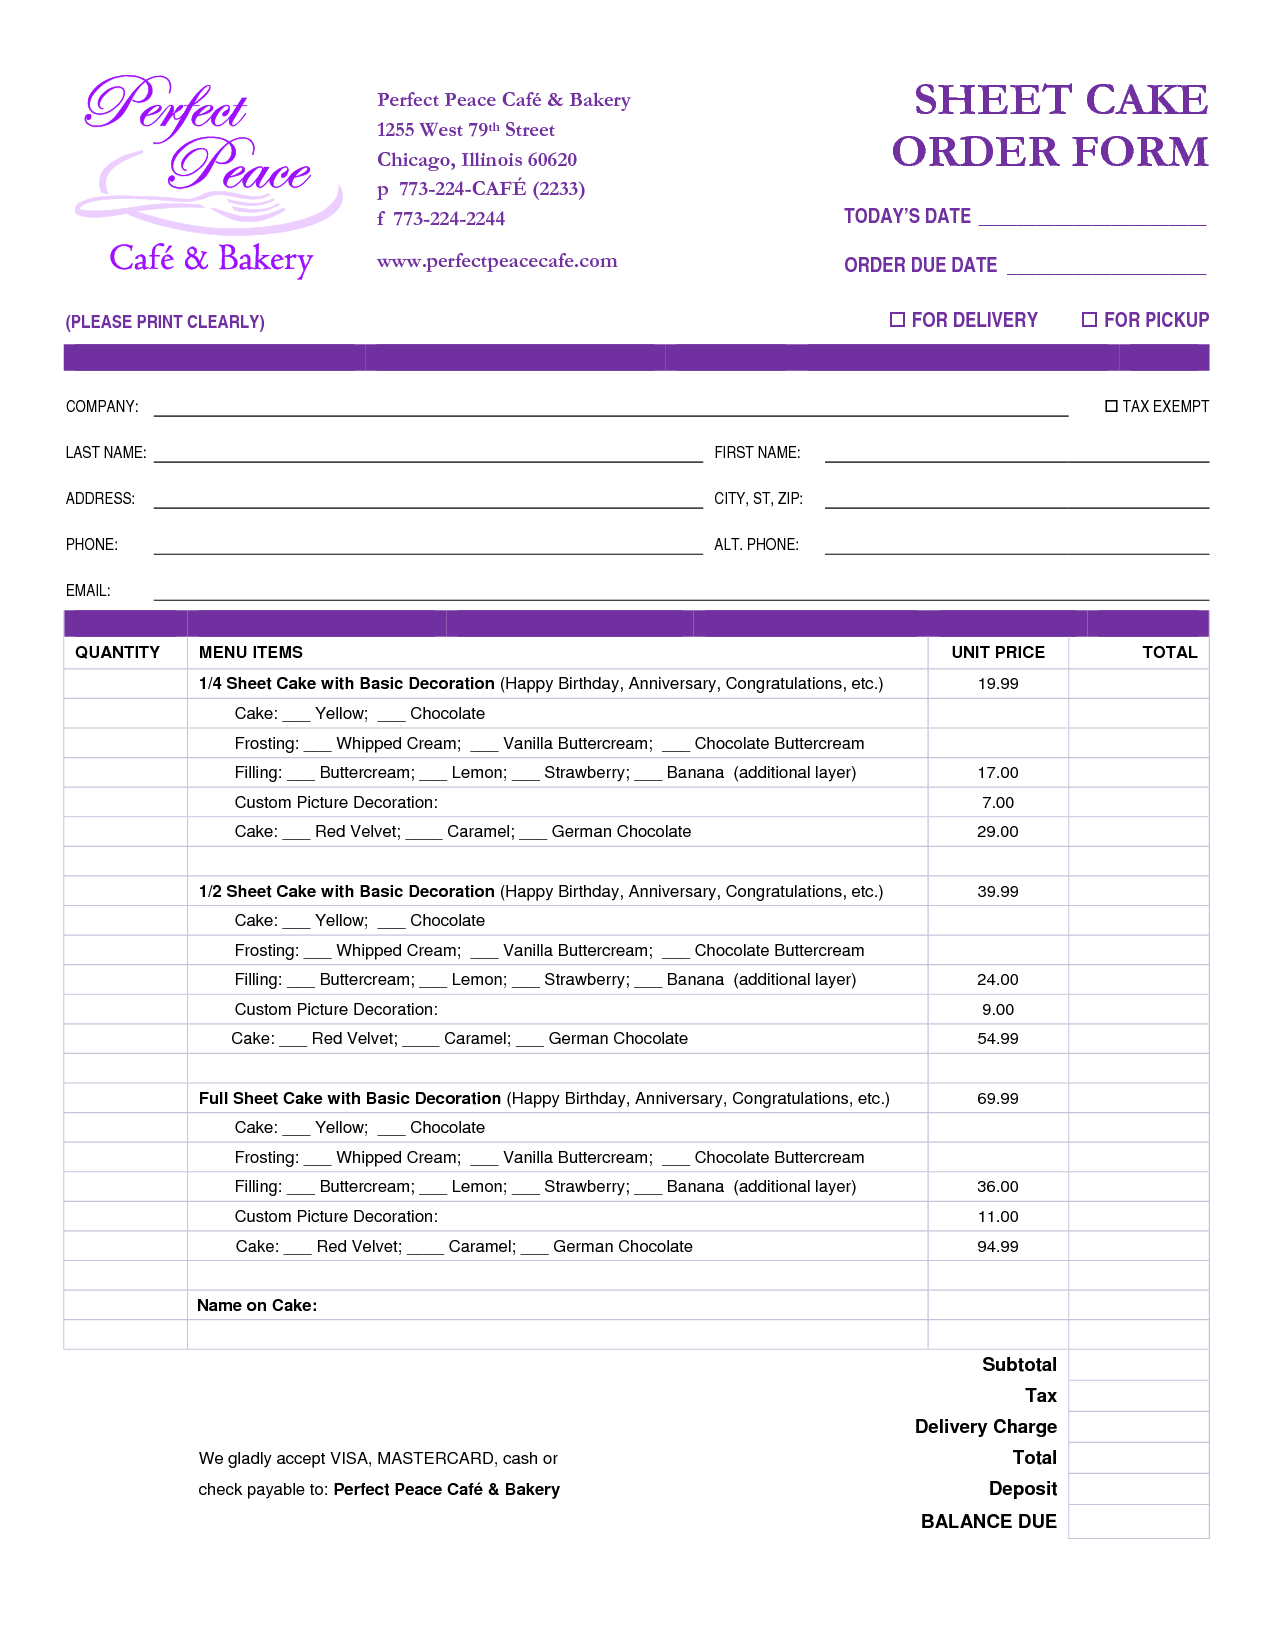 Bakery Invoice Template Cake order forms, Cake pricing